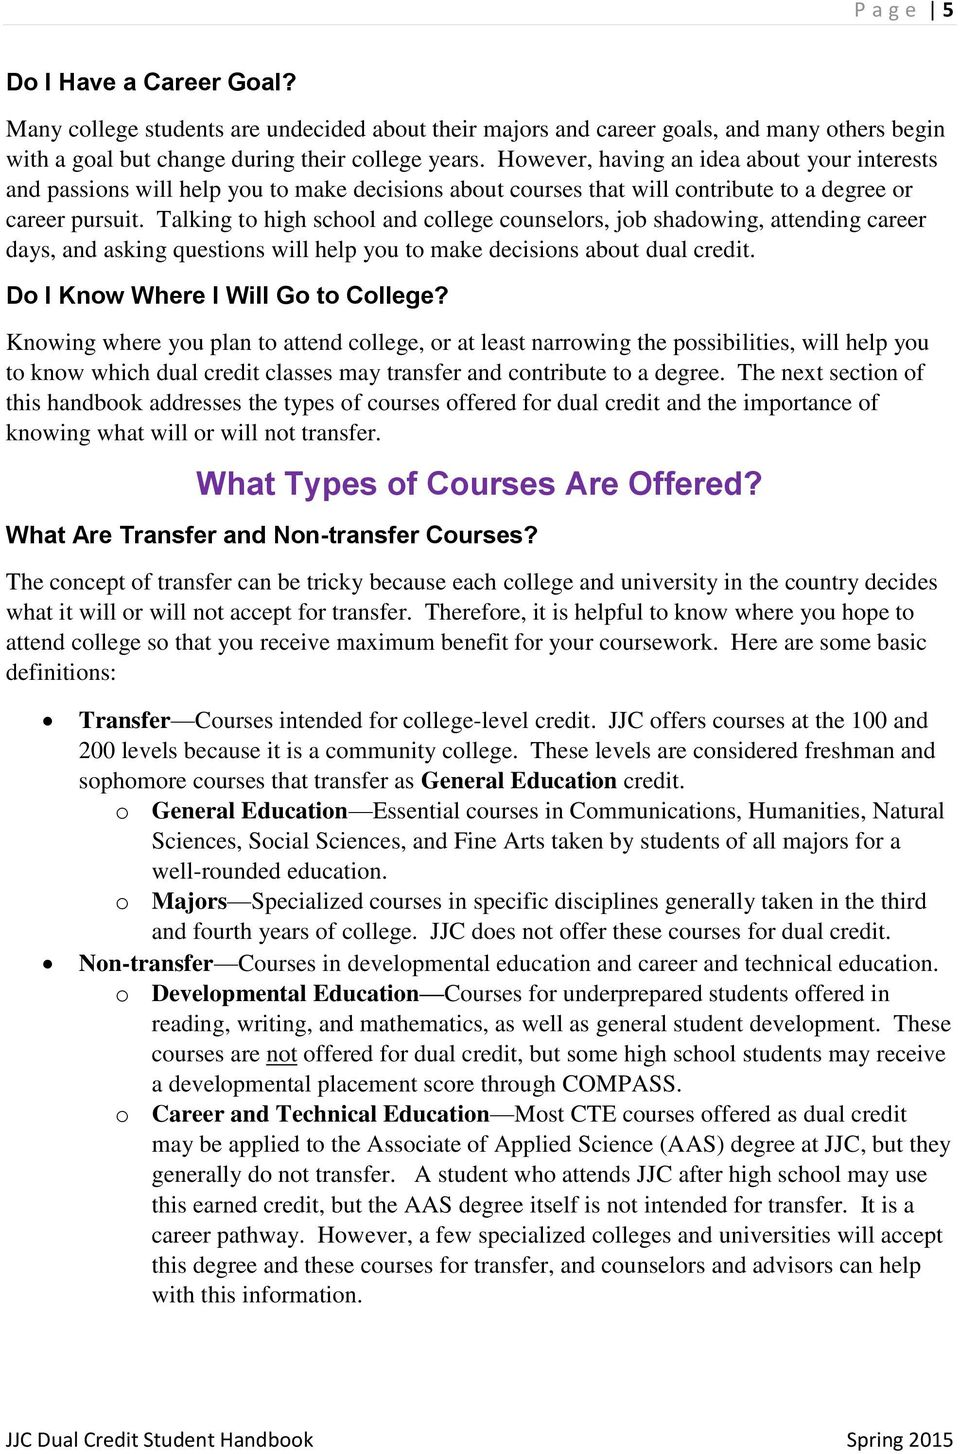 Talking to high school and college counselors, job shadowing, attending career days, and asking questions will help you to make decisions about dual credit. Do I Know Where I Will Go to College?